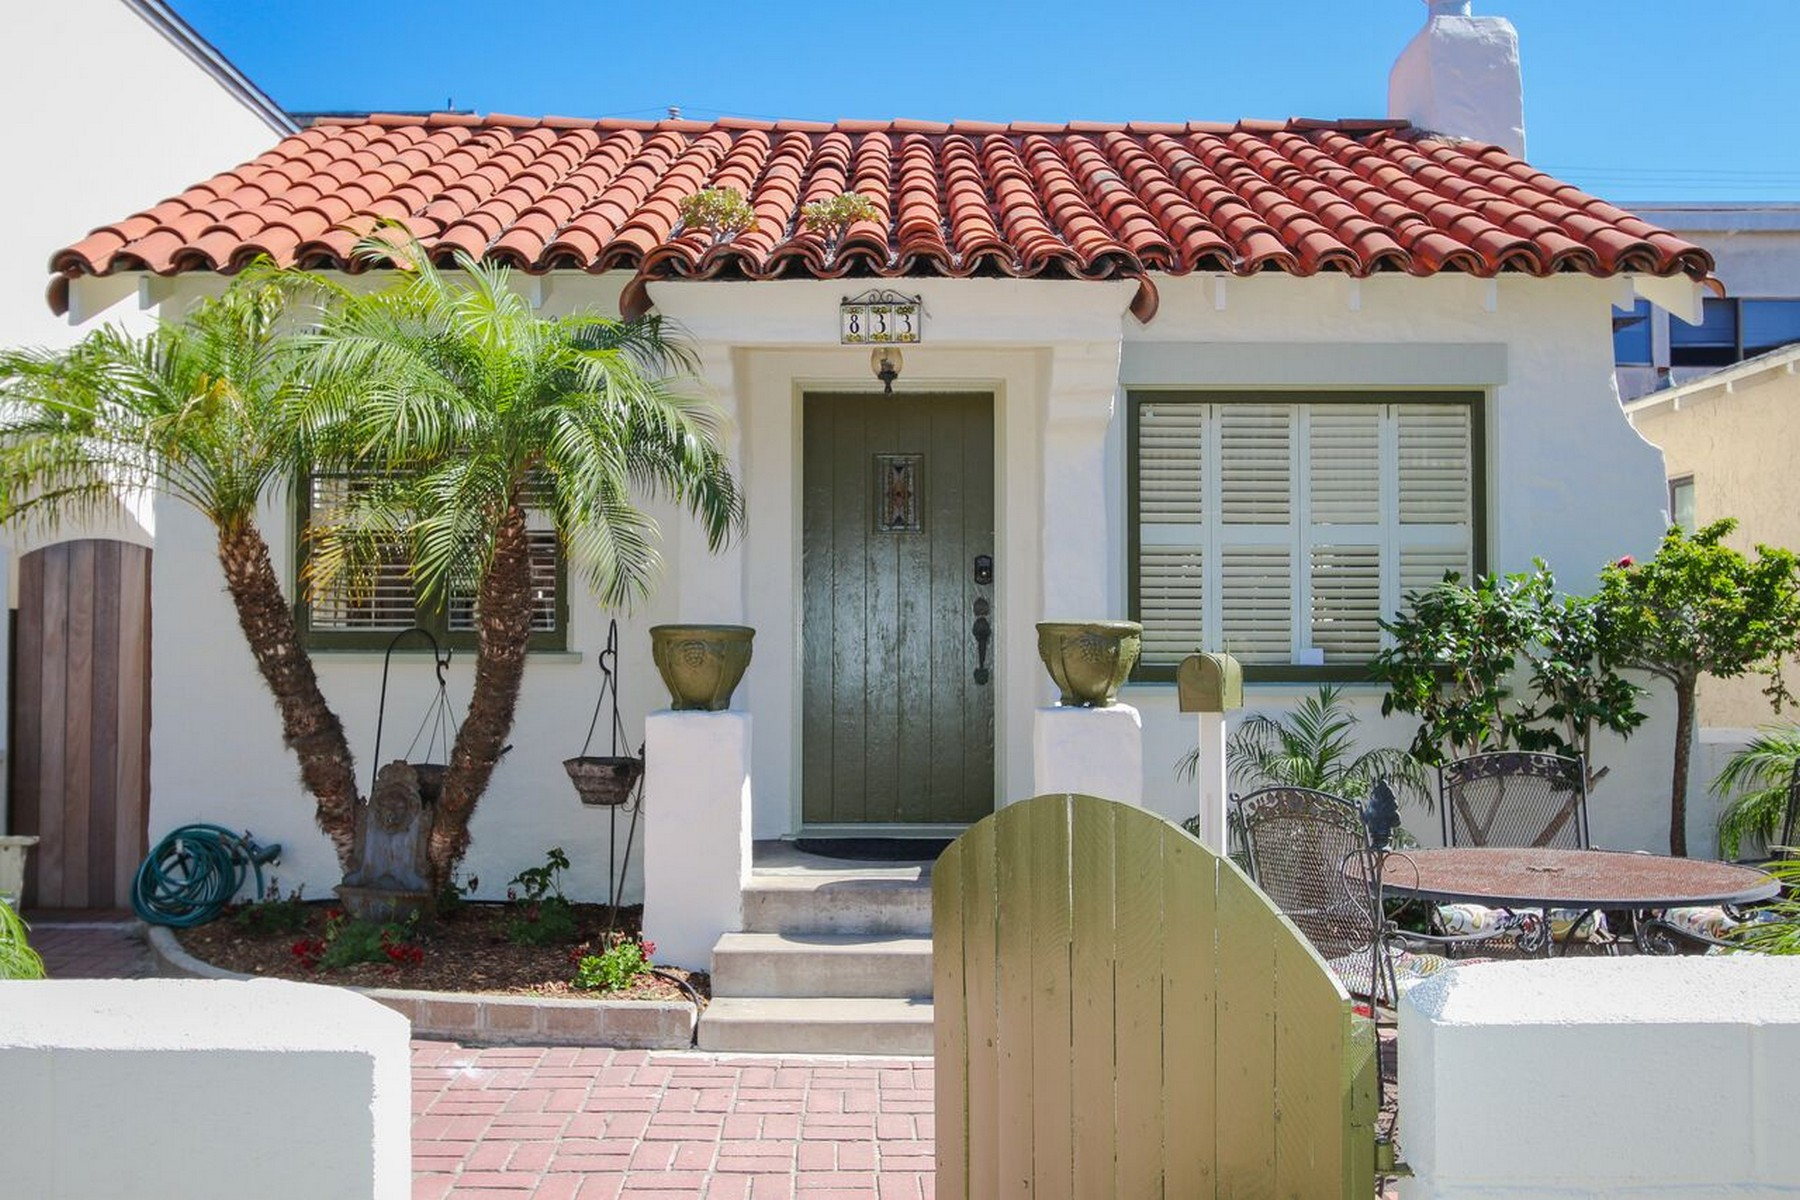 Single Family Home for Sale at Island Court 833 Island Court San Diego, California 92109 United States